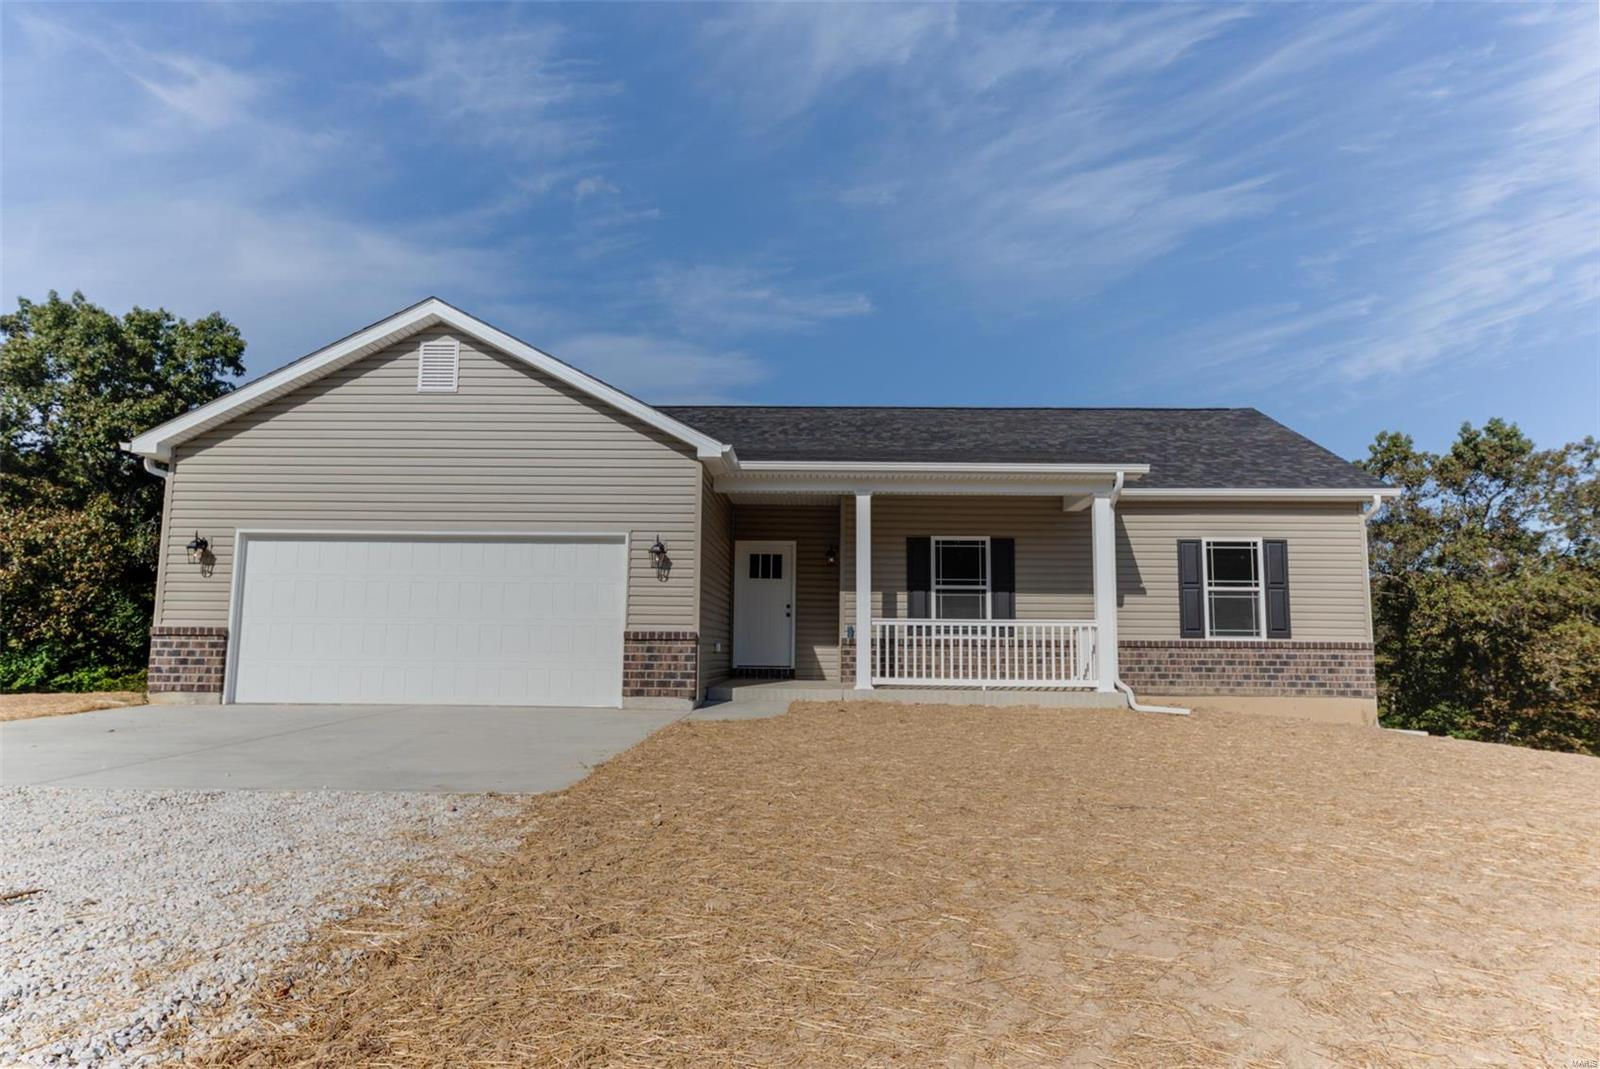 14878 Pike 343 Road Property Photo - Bowling Green, MO real estate listing